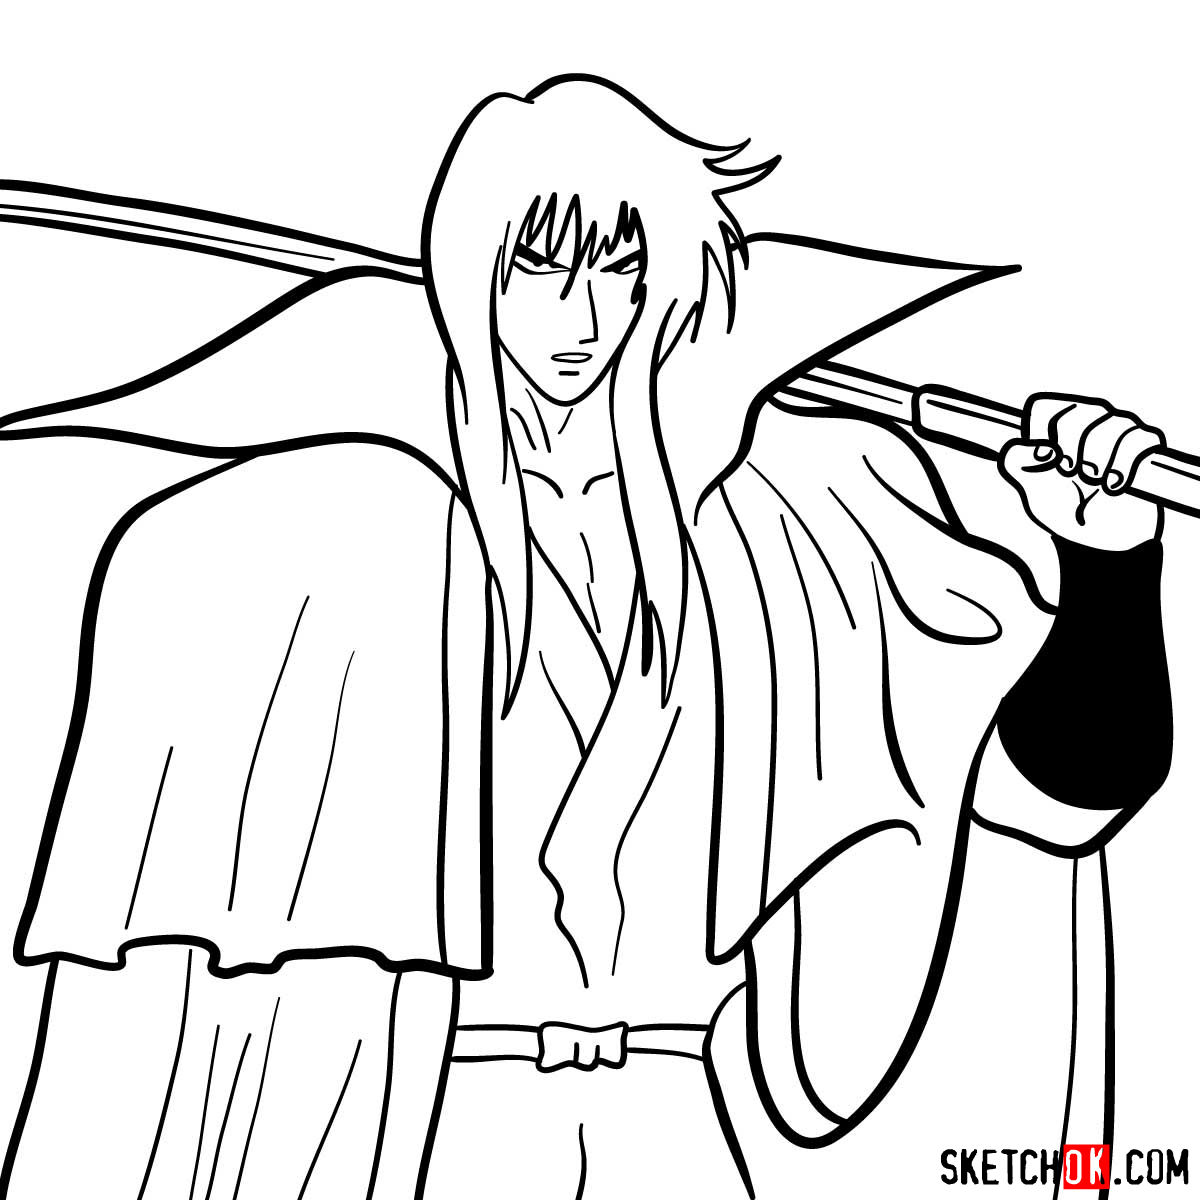 How to draw Hiko Seijuro XIII | Rurouni Kenshin